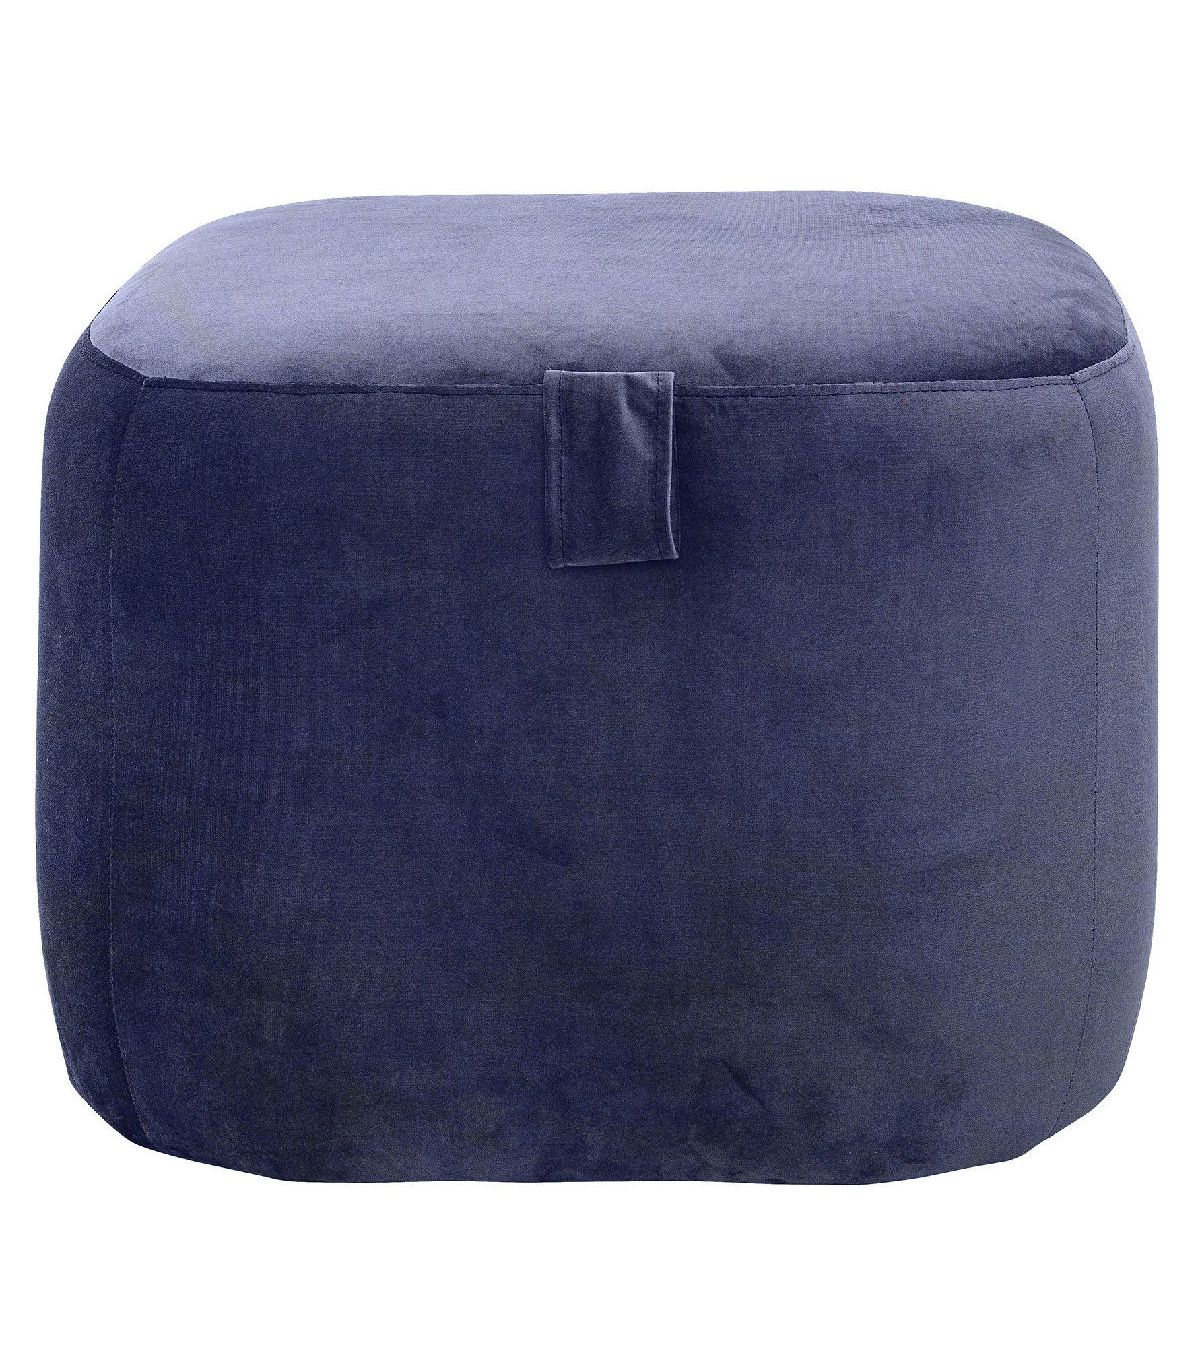 pouf bella bleu bloomingville. Black Bedroom Furniture Sets. Home Design Ideas